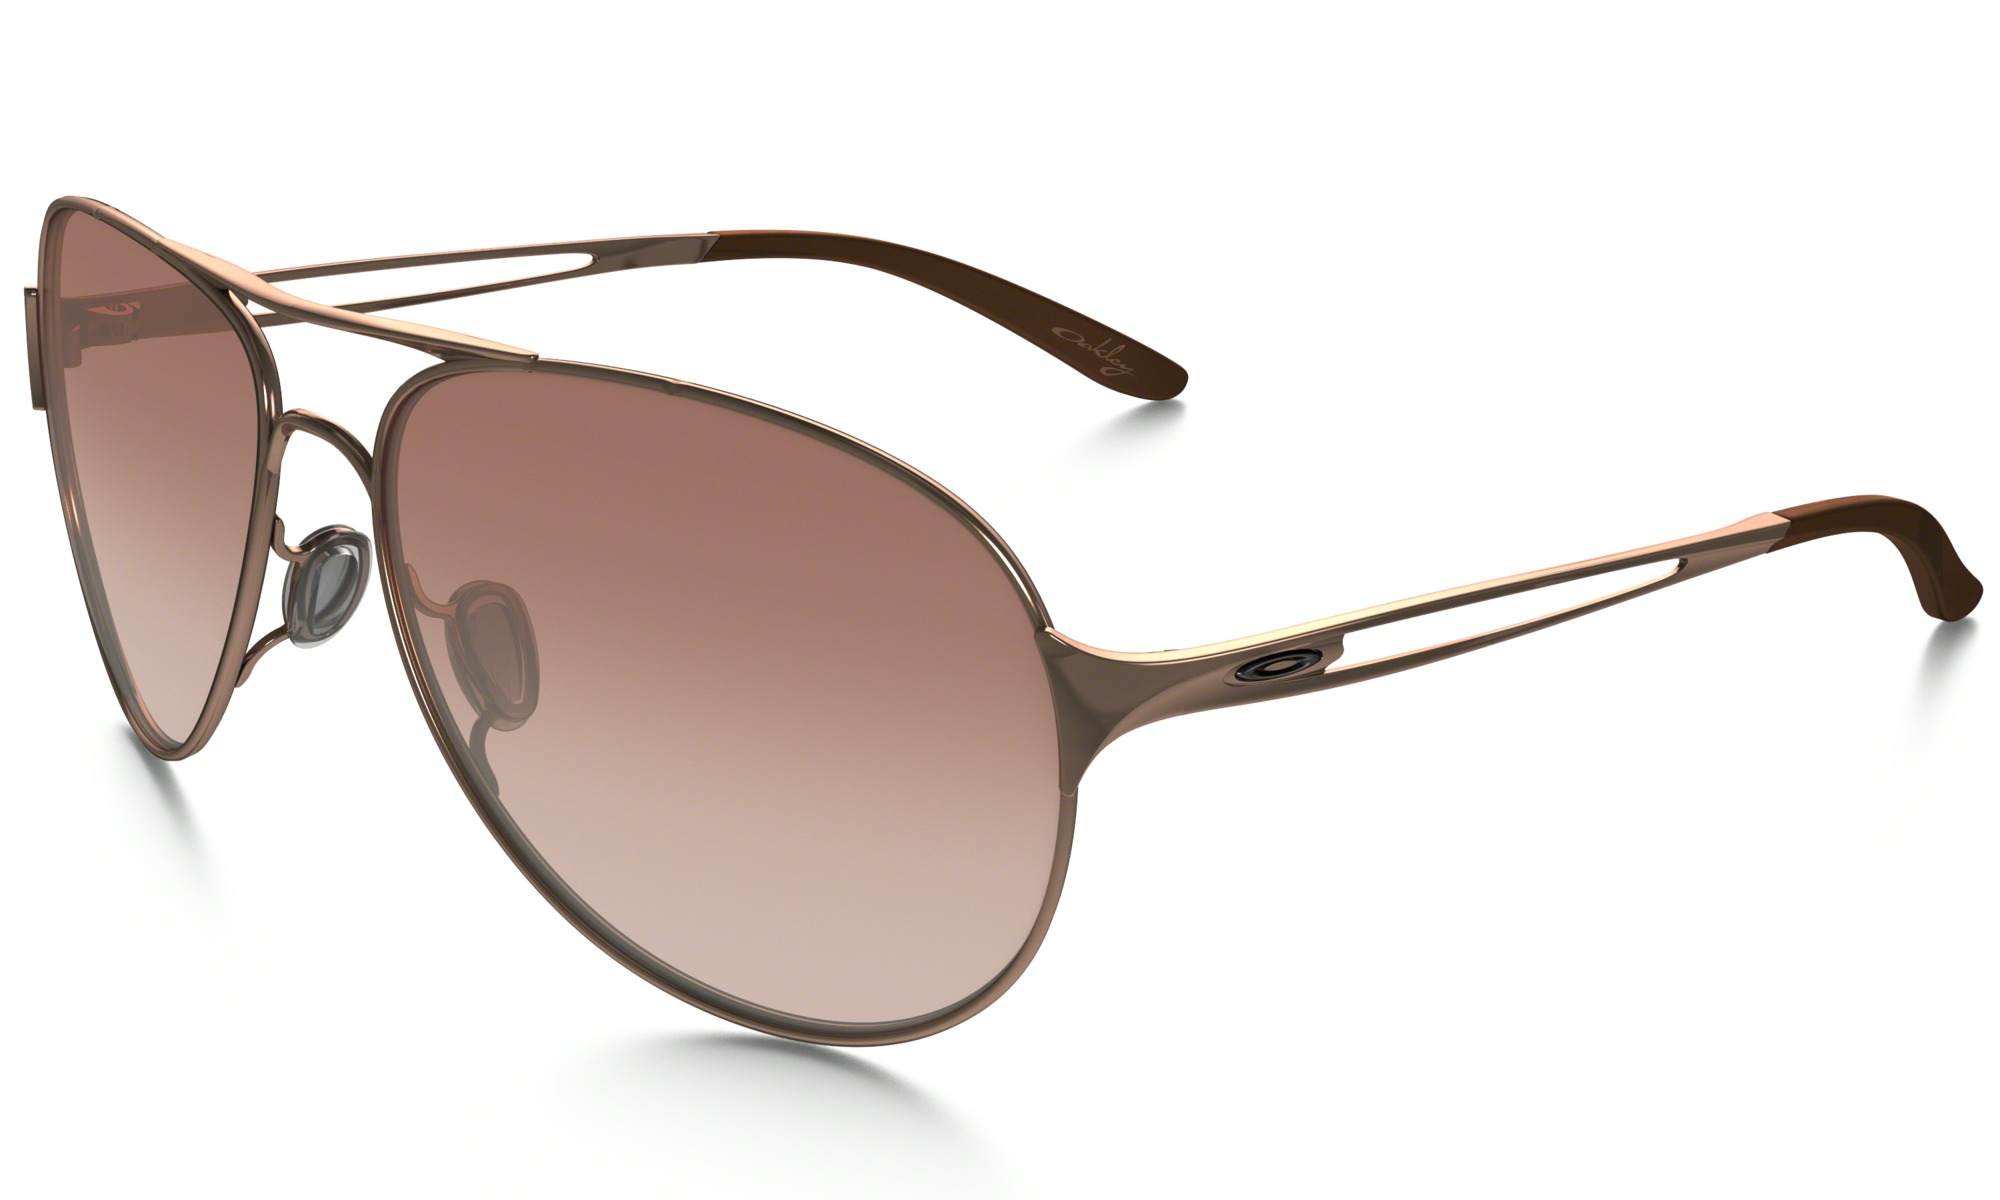 Gold Color Frame Sunglasses : Oakley Sunglasses CAVEAT Rose Gold Frame VR50 Brown ...